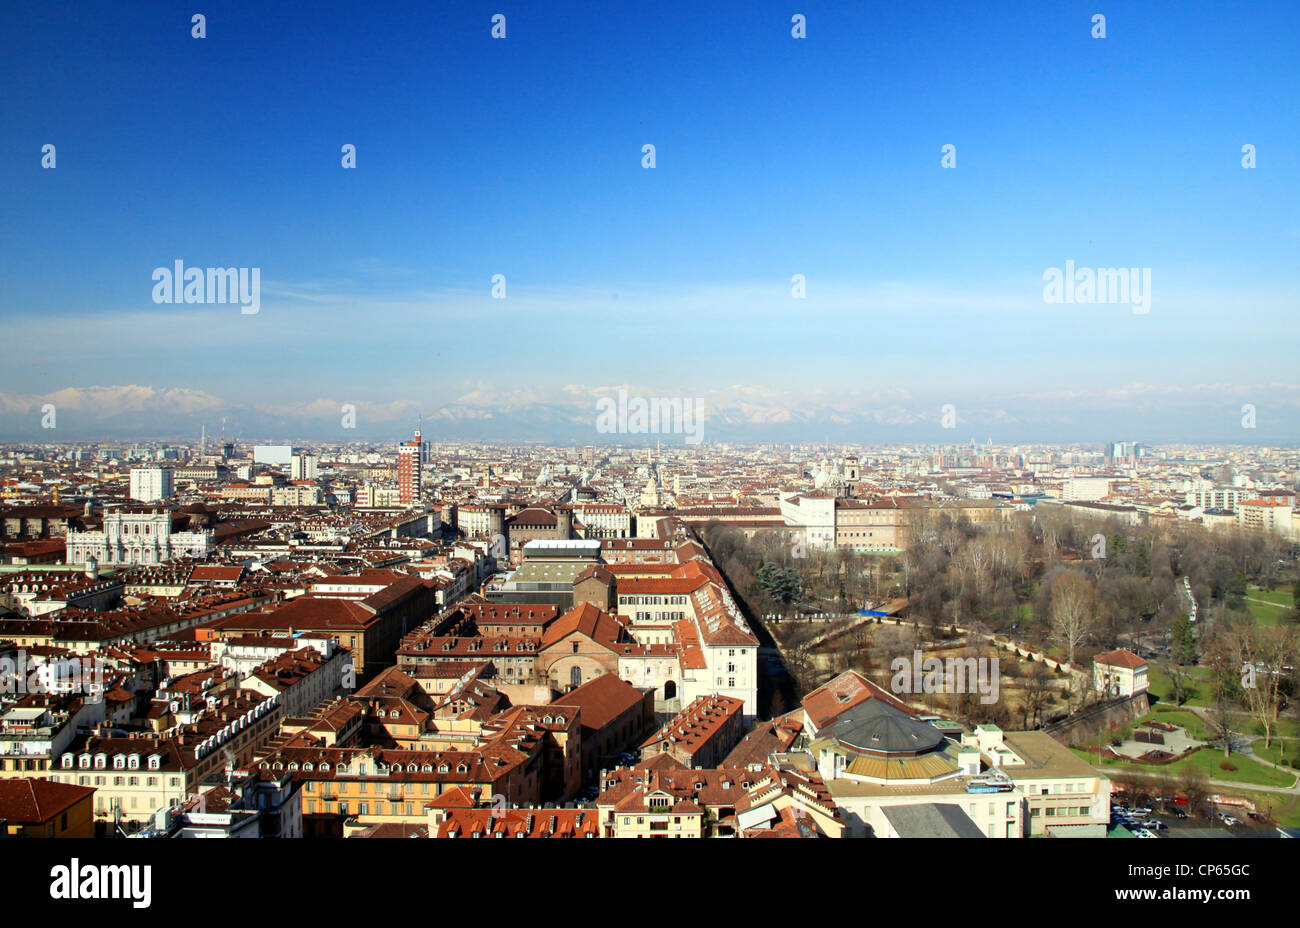 A view of Turin, Italy, from the Mole Antonelliana - Stock Image